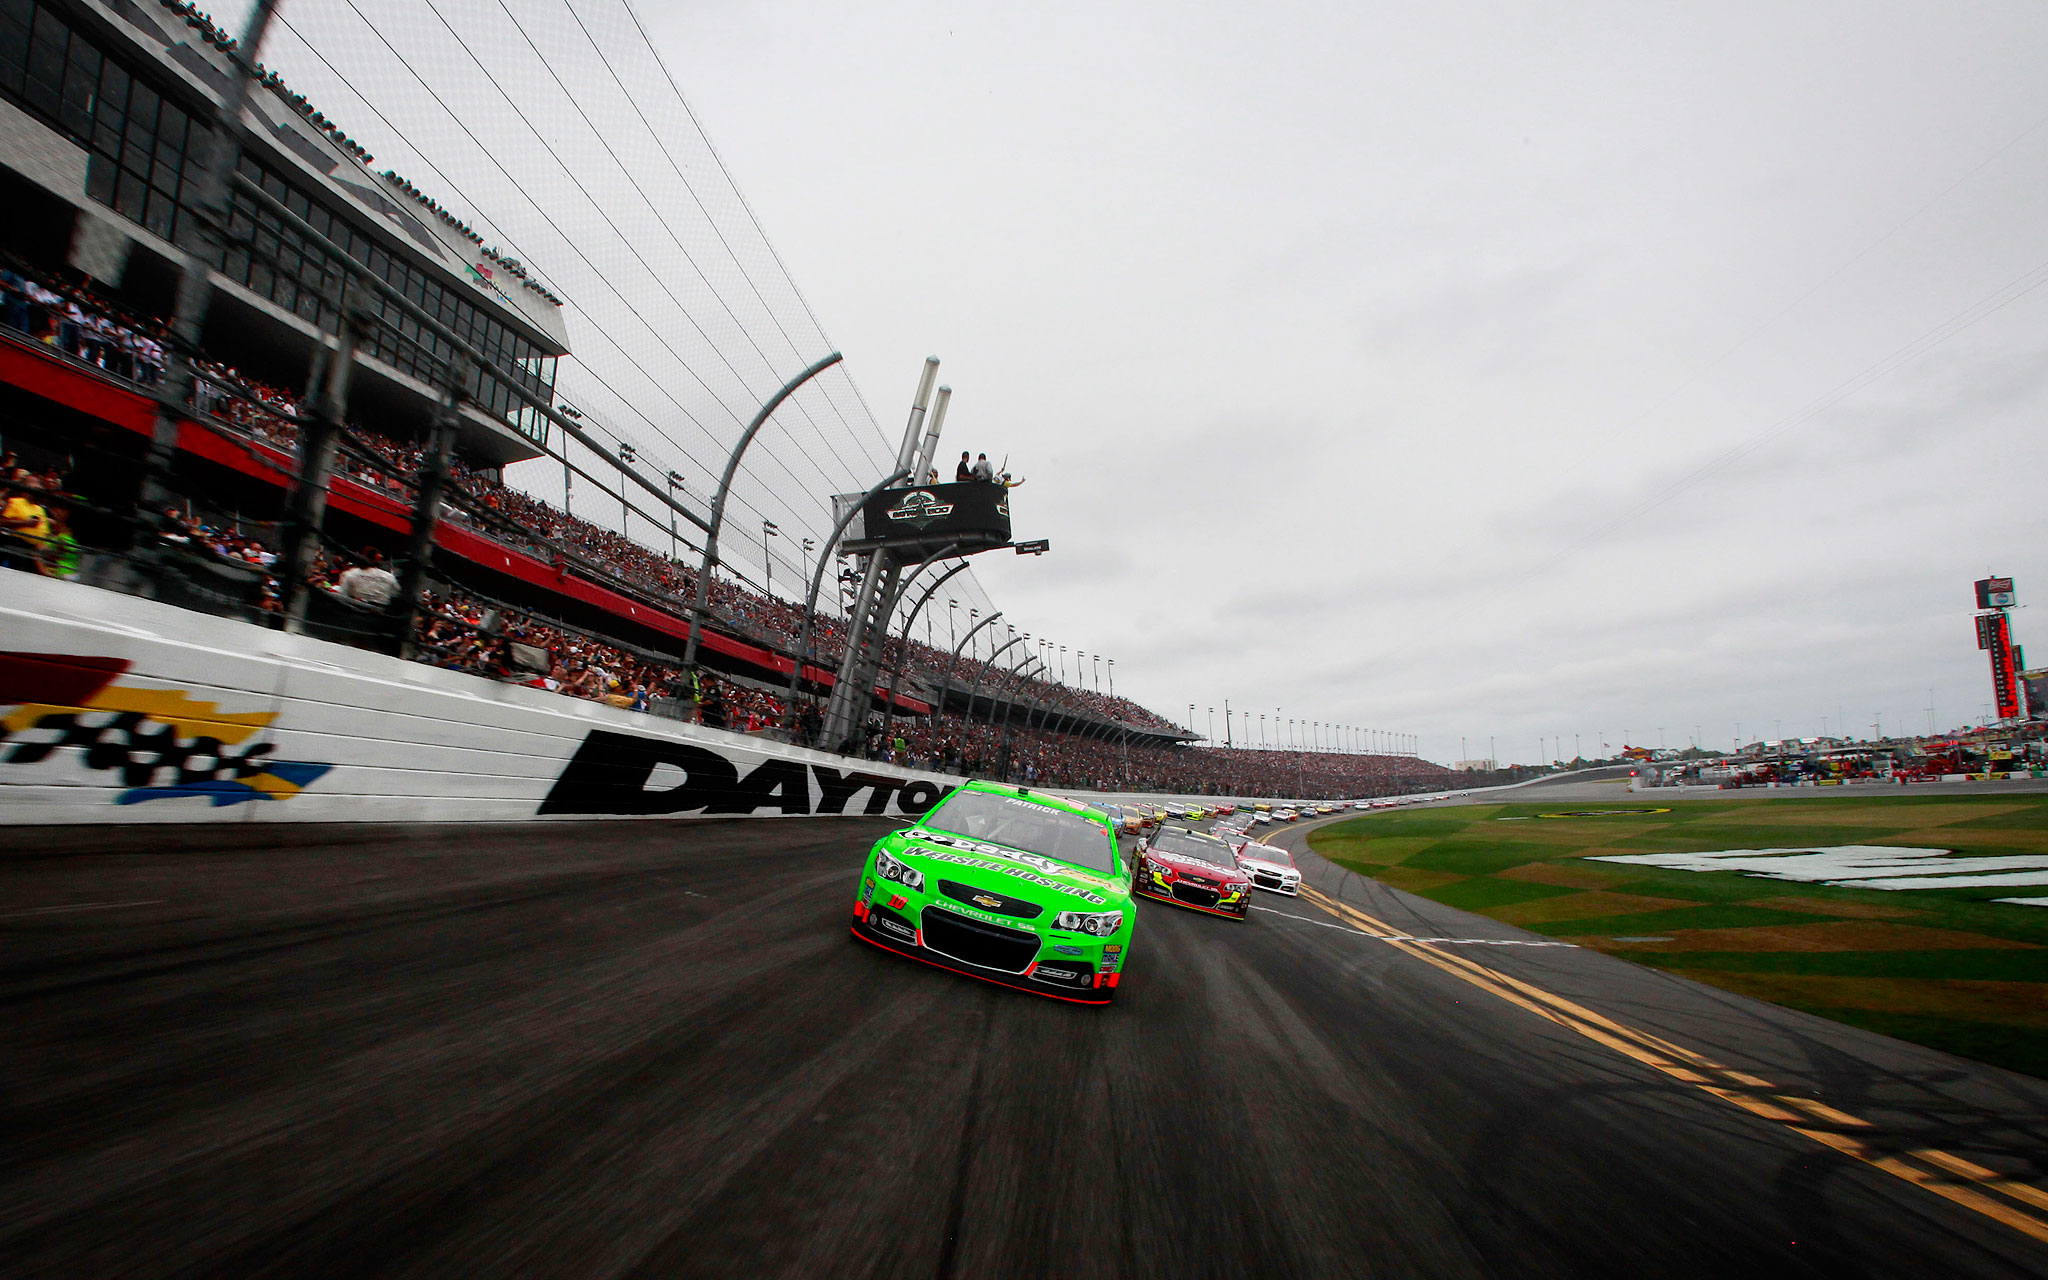 Danica Patrick finishes strong